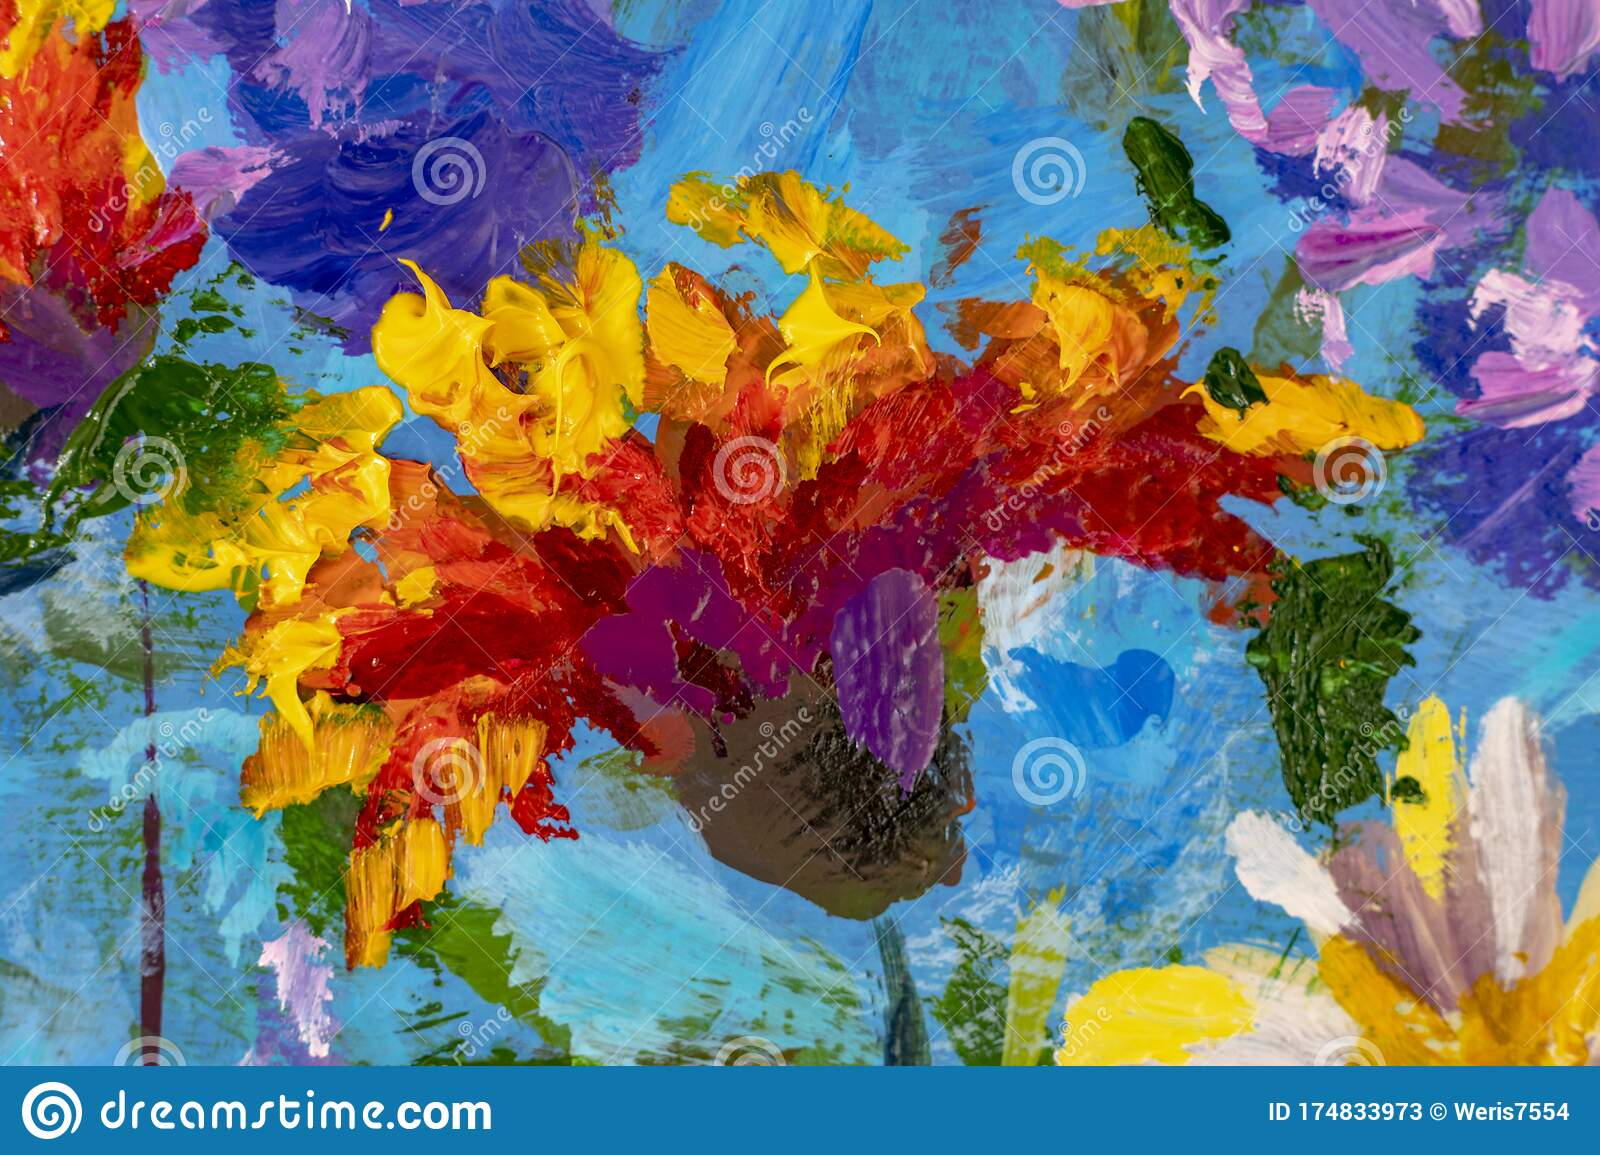 Impressionism Style Flower Painting Still Life Painting Art Canvas By Artist Stock Illustration Illustration Of Canvas Still 174833973